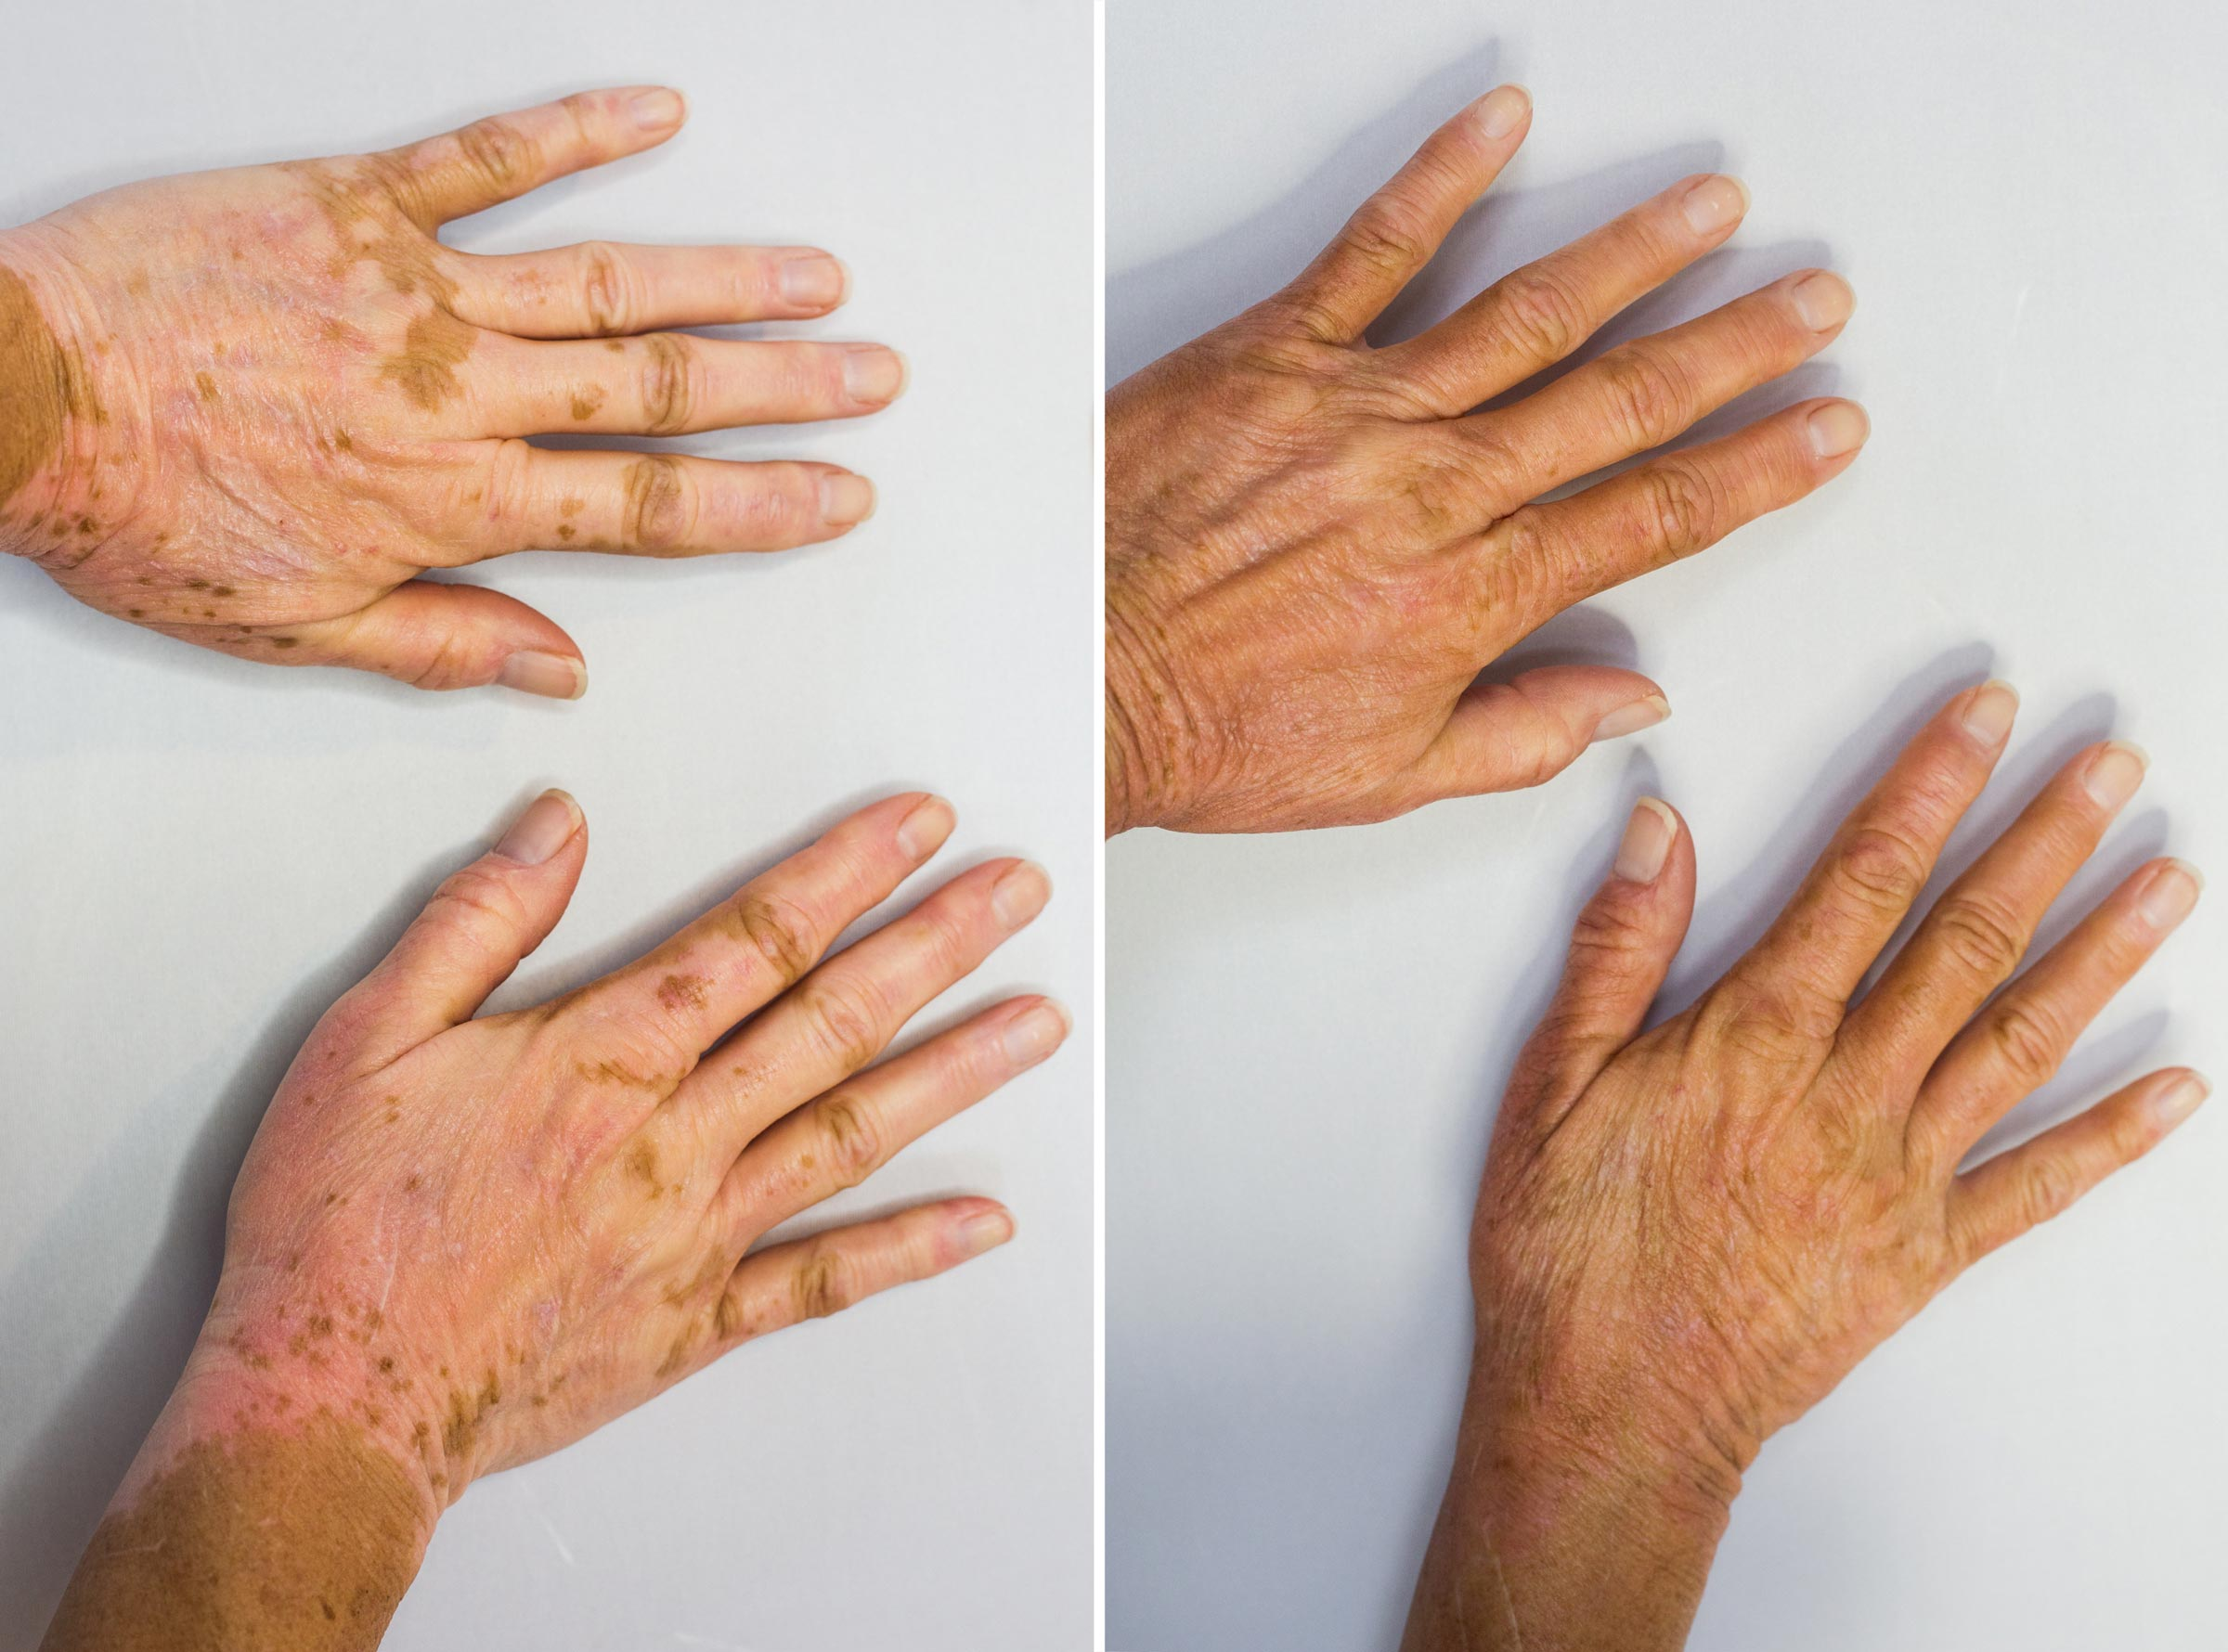 The difference that Vitiligo Vanquish makes can be astonishing to you, but seem perfectly natural to others.